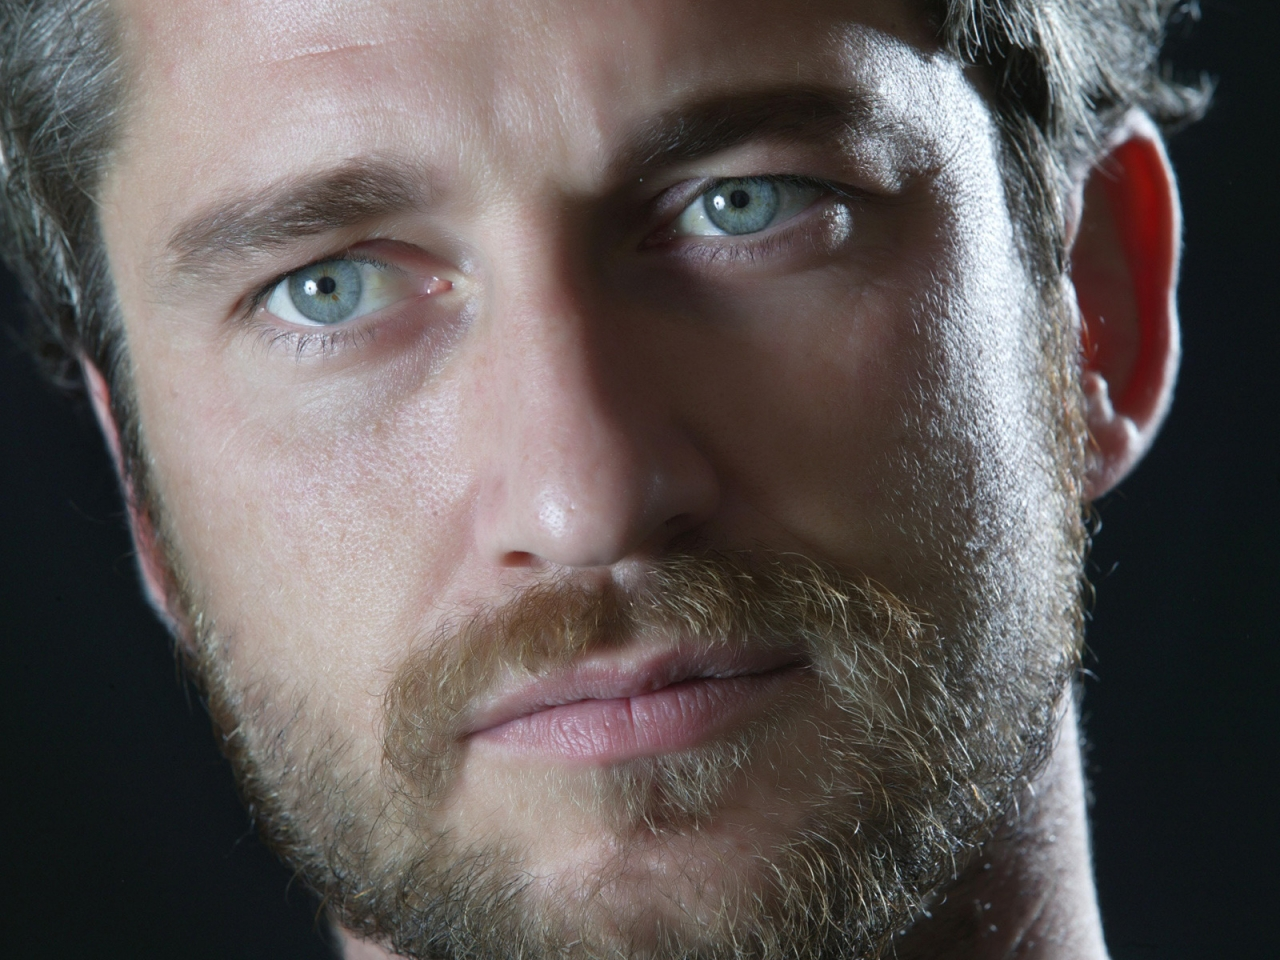 Gerard Butler Close Up for 1280 x 960 resolution